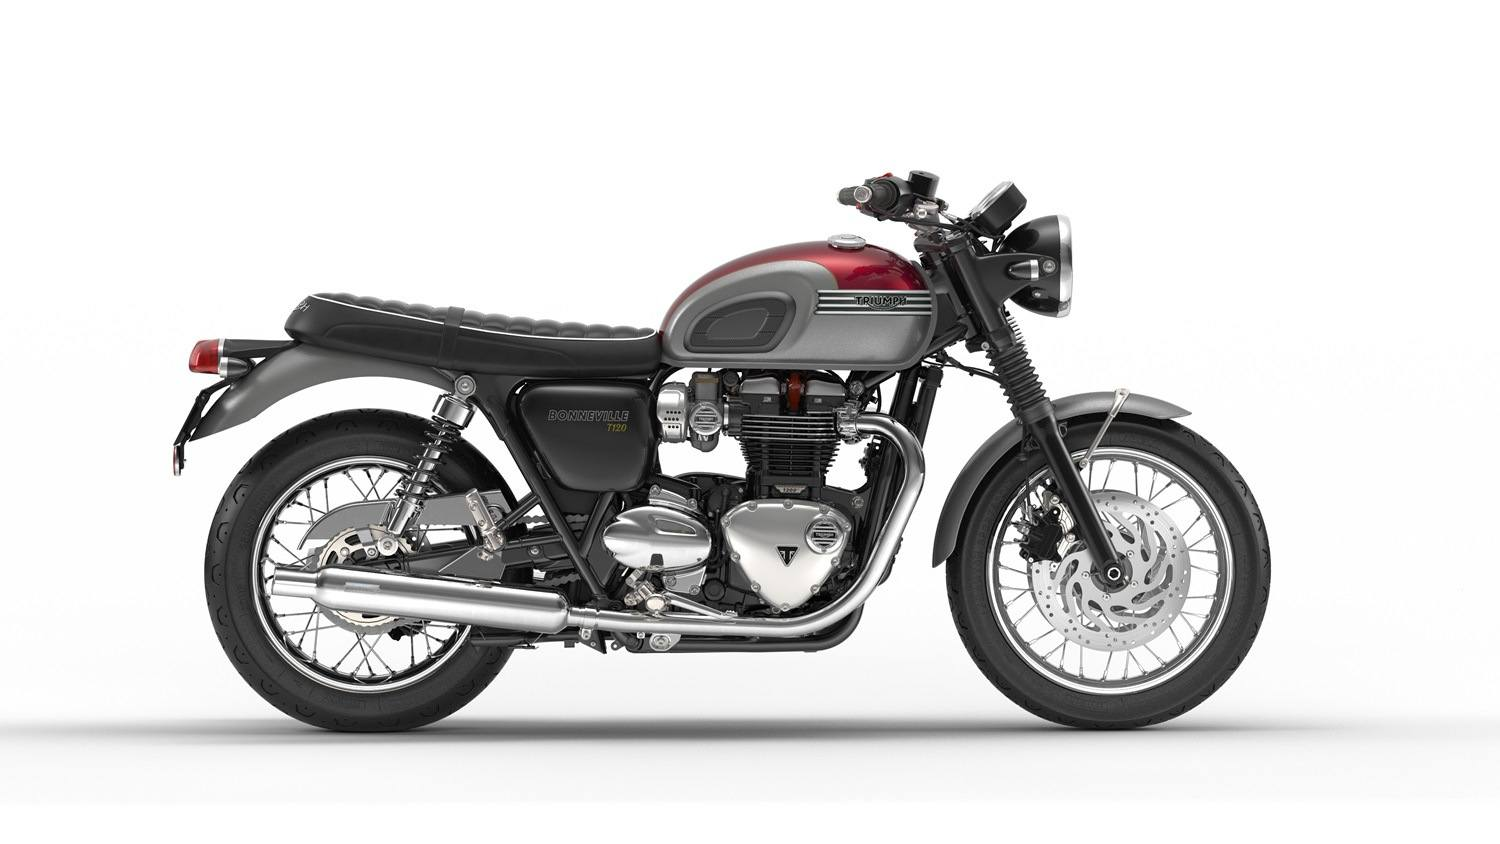 2016 Triumph Bonneville T120 in Port Clinton, Pennsylvania